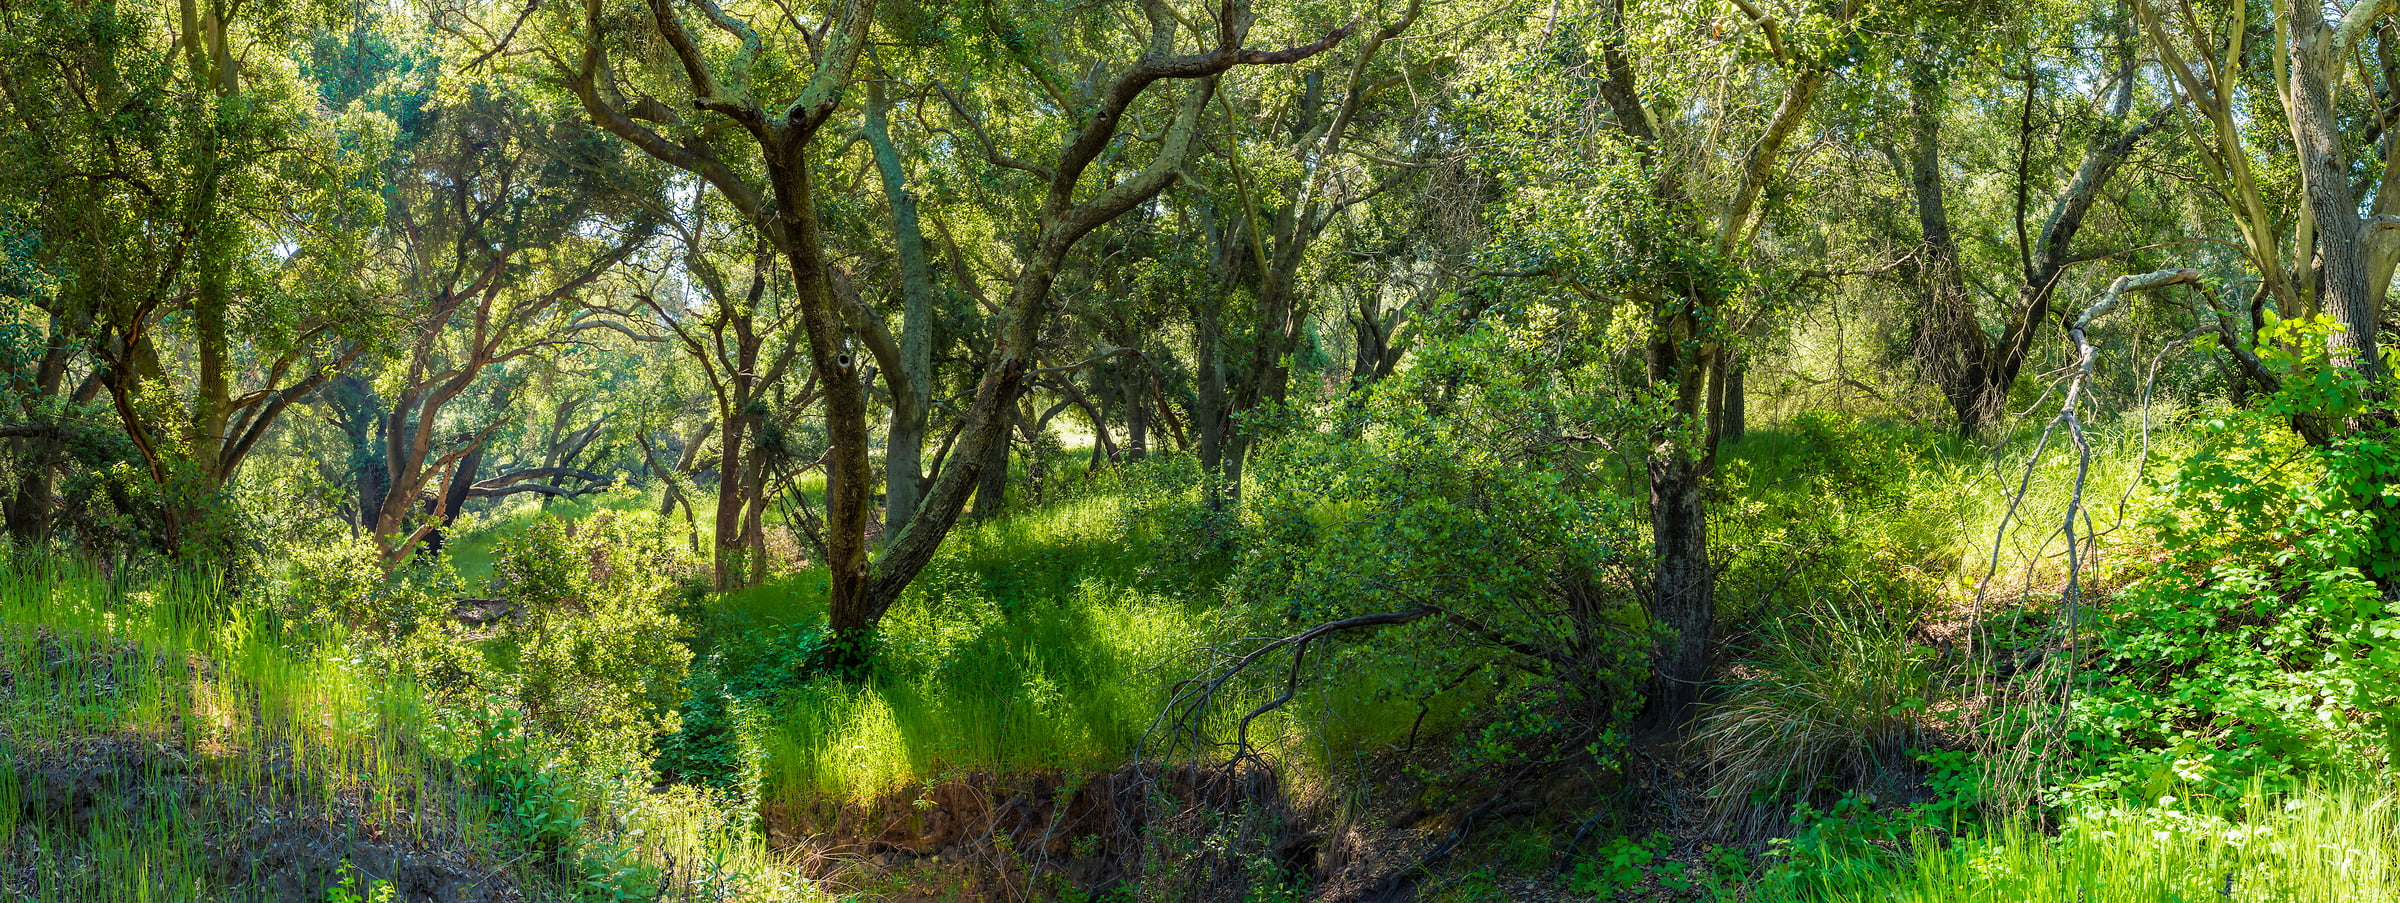 193 megapixels! A very high resolution, large-format VAST photo print of a green nature scene; wallpaper photograph created by Jim Tarpo in Silverado, California